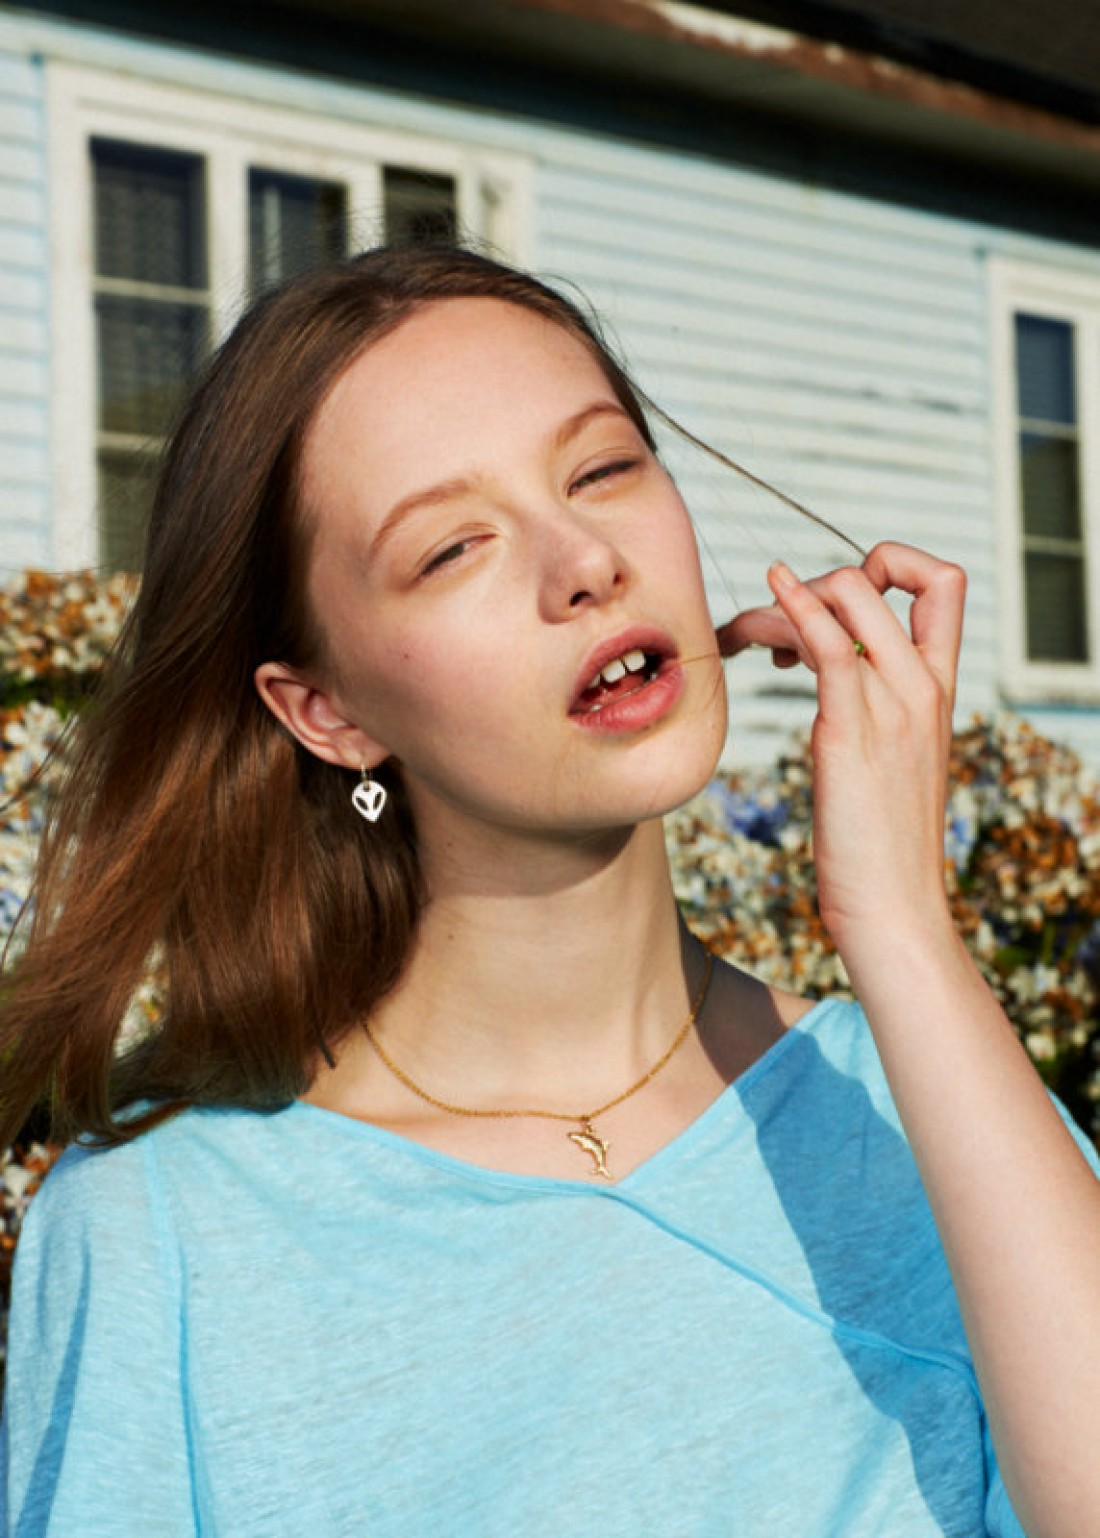 Lily for ID Magazine, shot by Sam Nixon, styling by Imogen Wilson